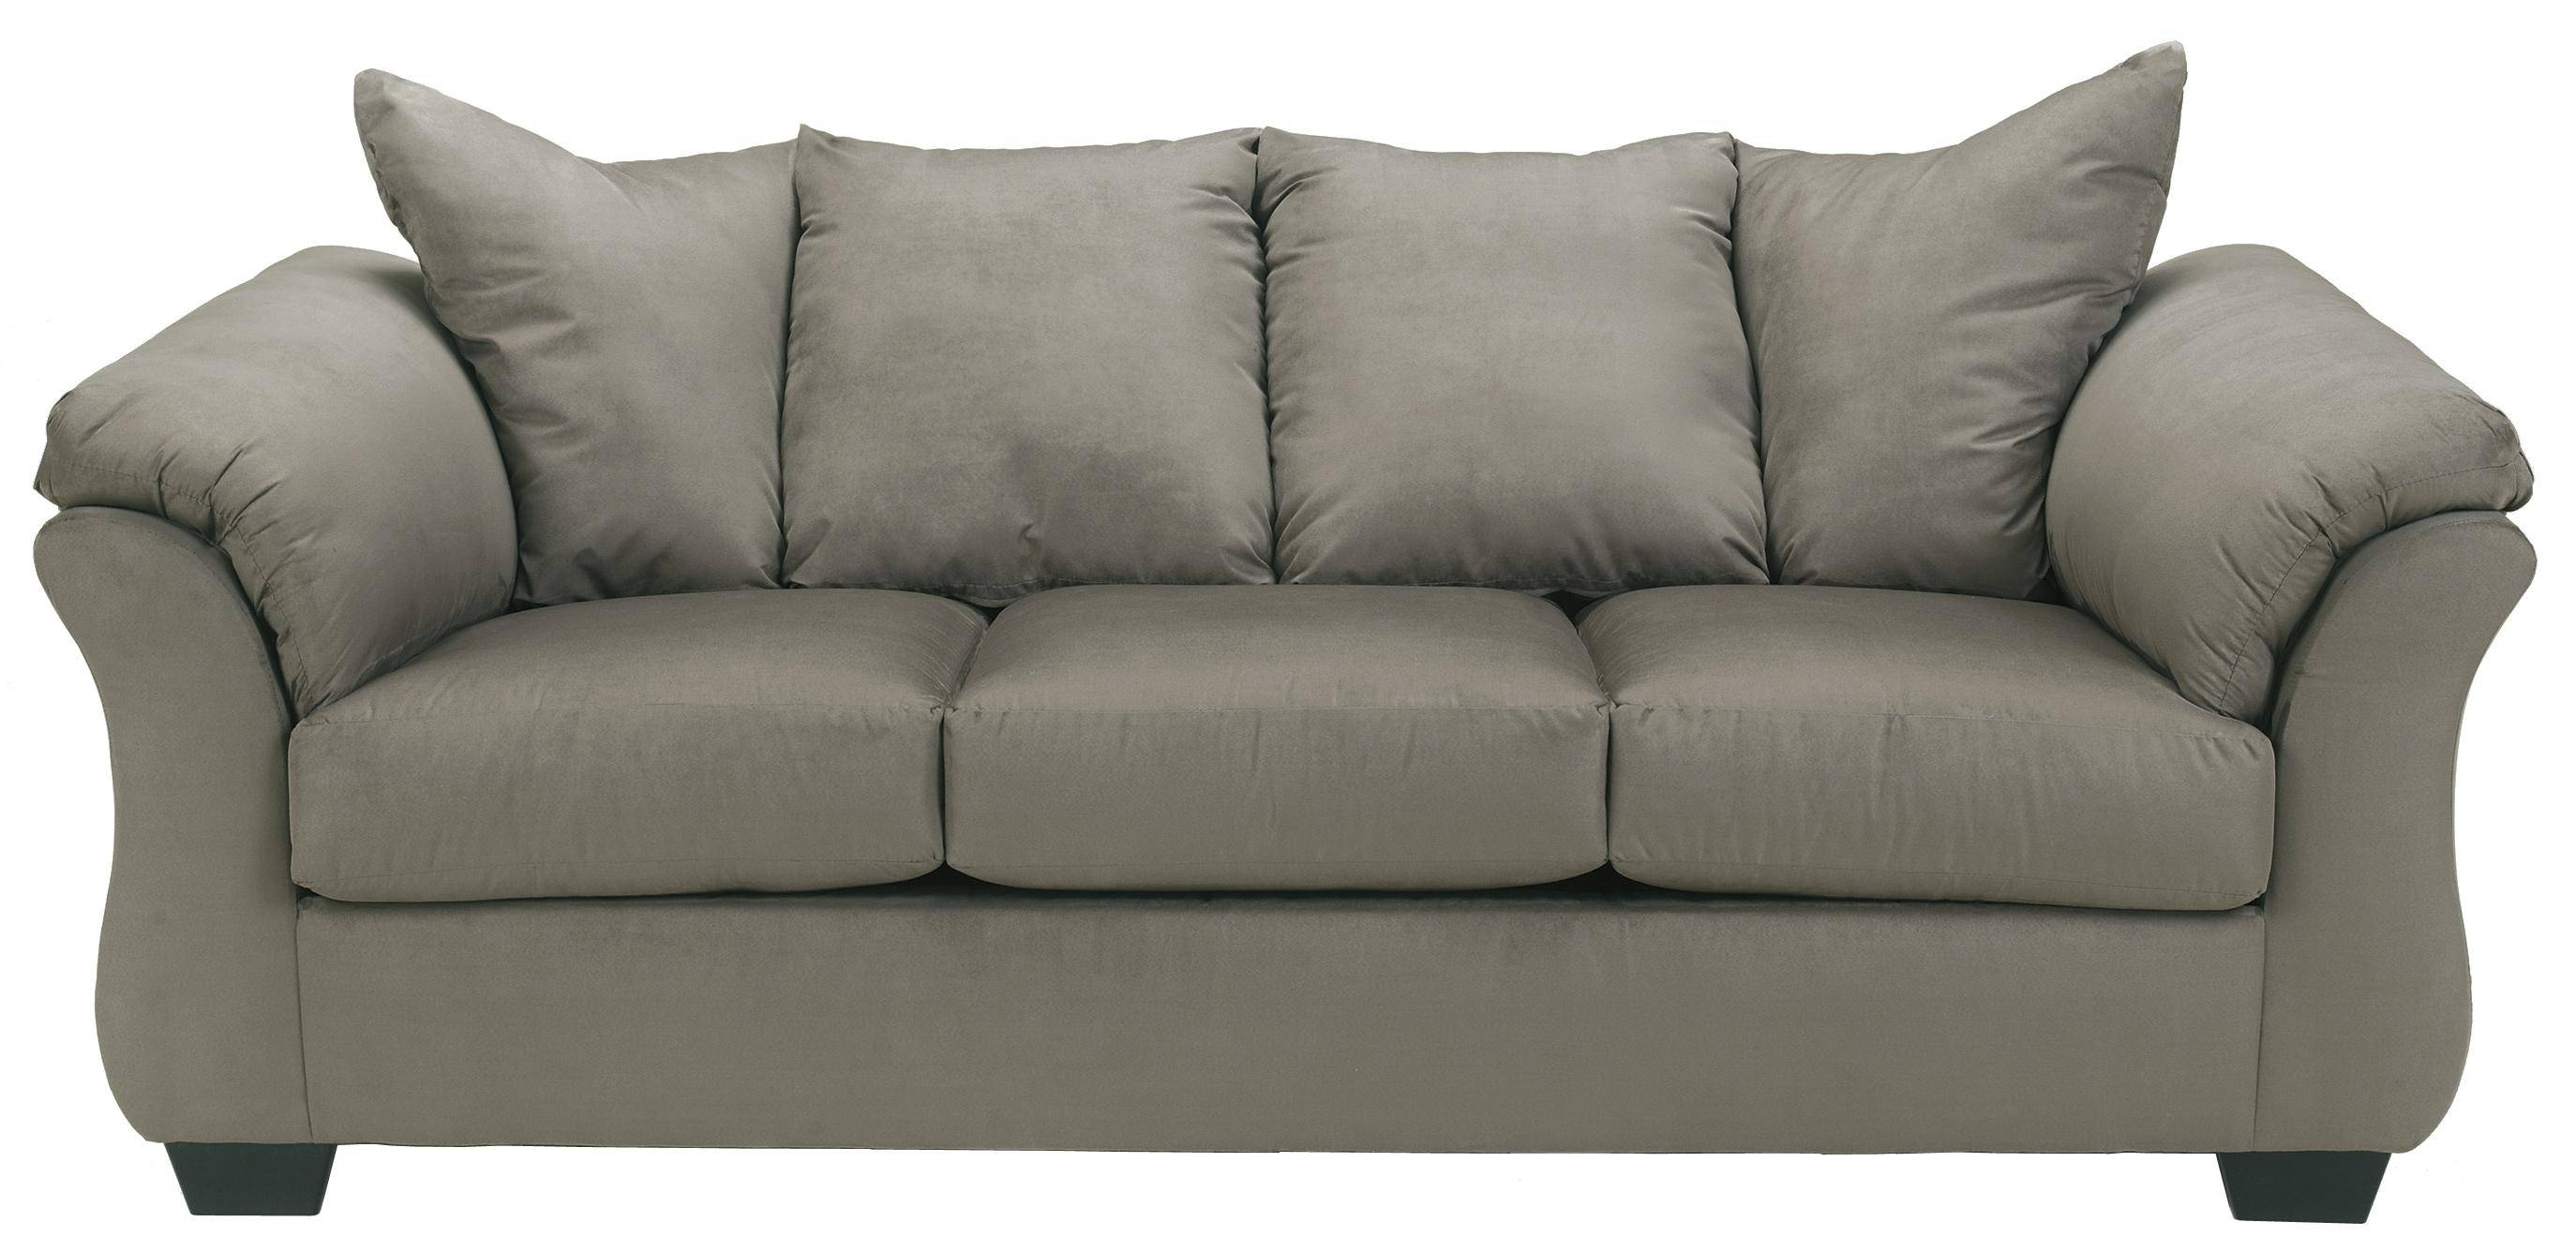 Signature Designashley Darcy - Cobblestone Contemporary Full in Cushion Sofa Beds (Image 19 of 30)